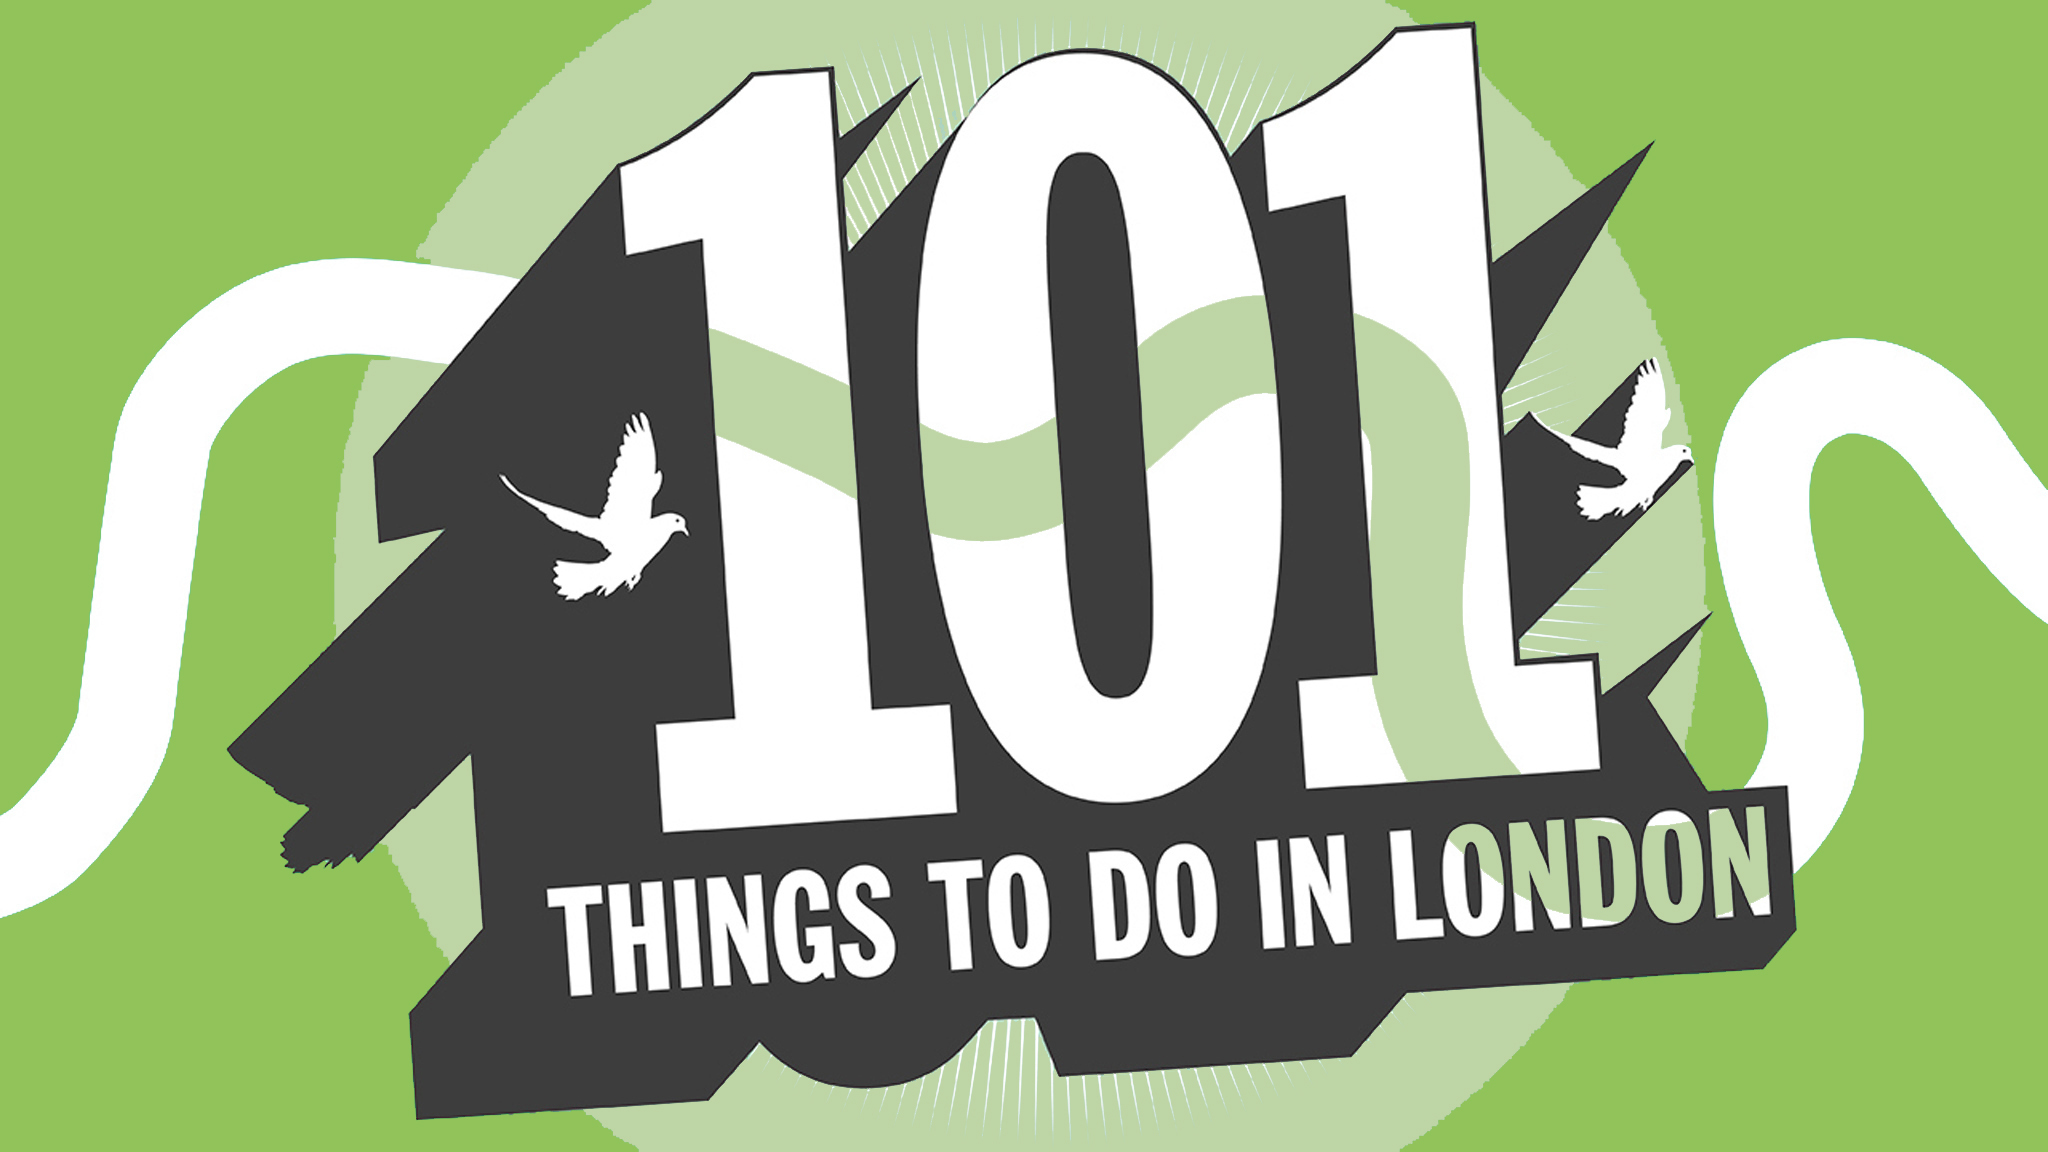 101 things to do in London